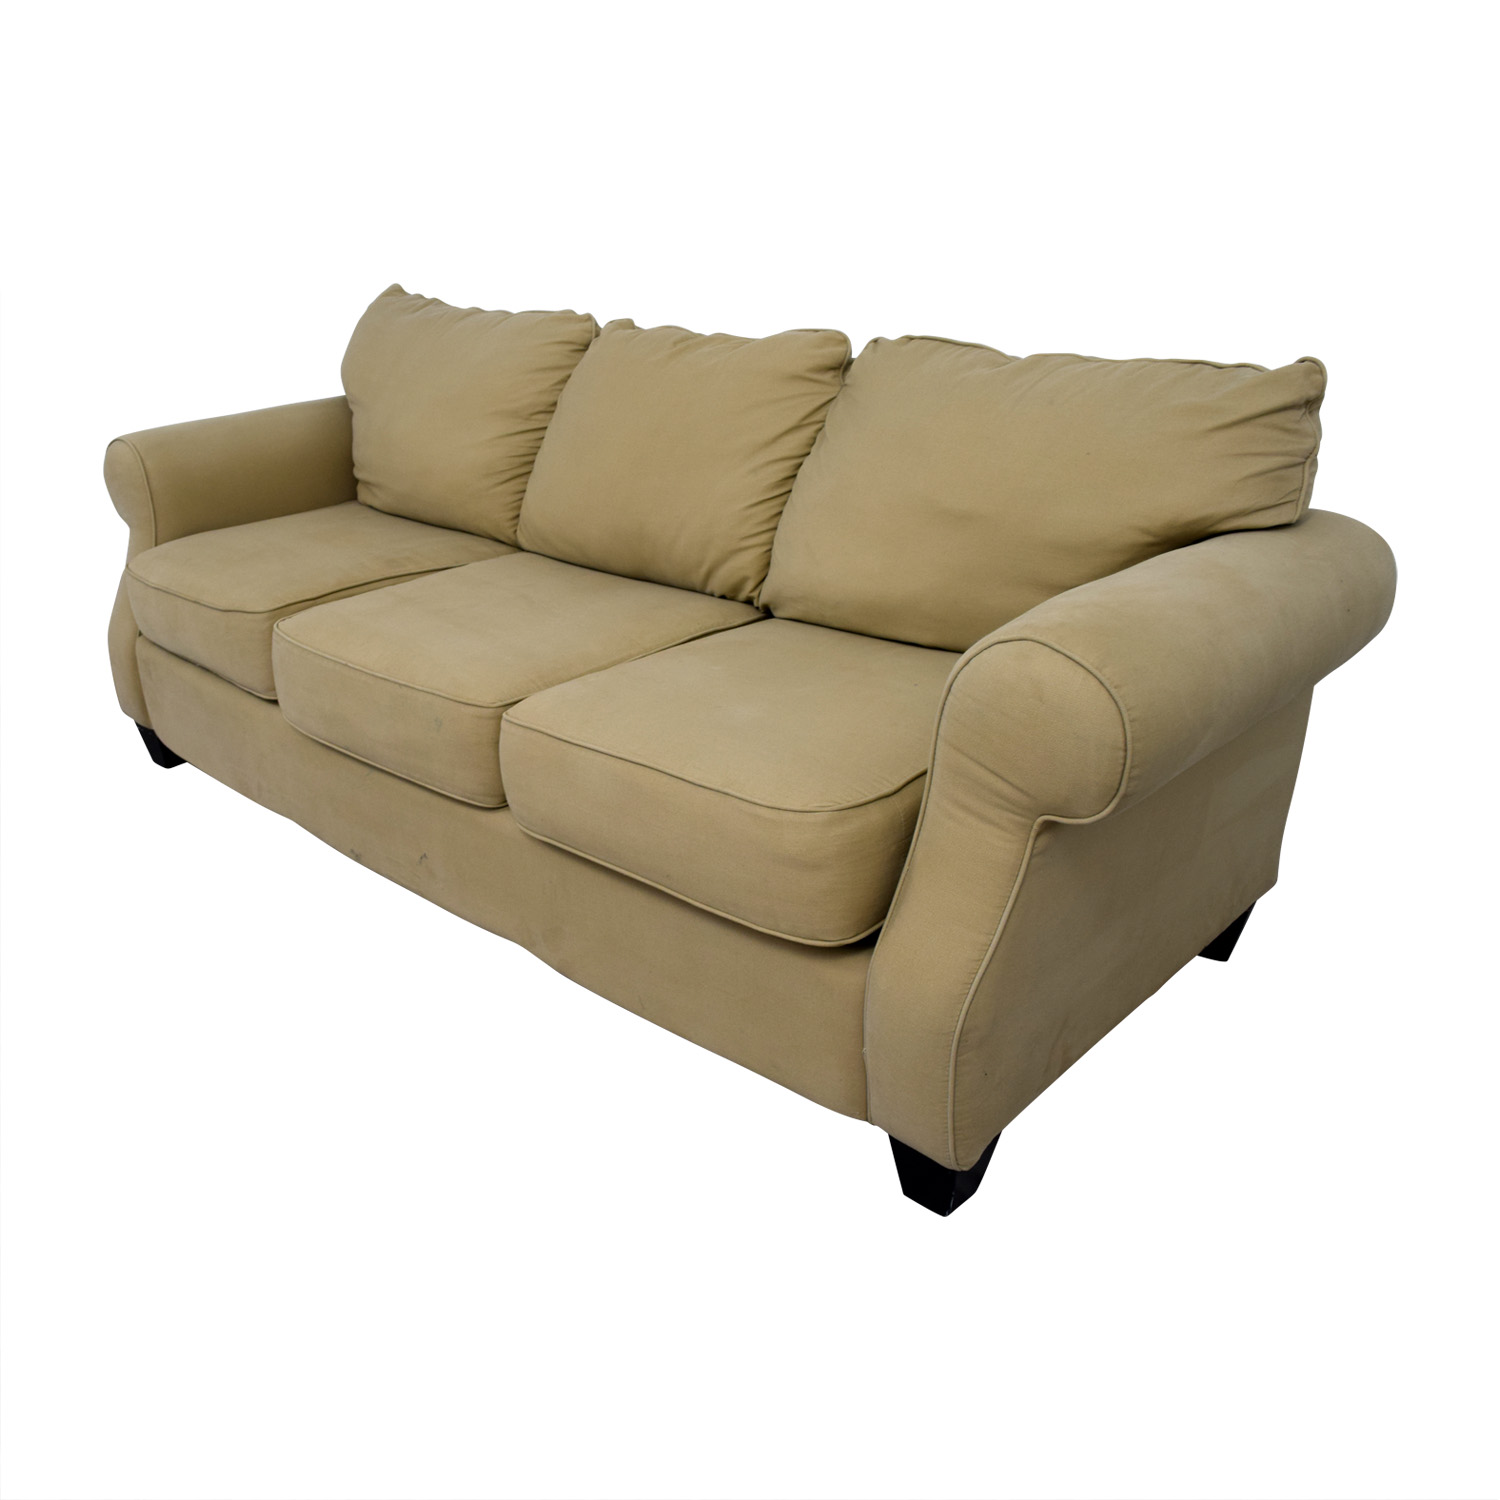 shop Beige Three-Cushion Curved Arm Sofa